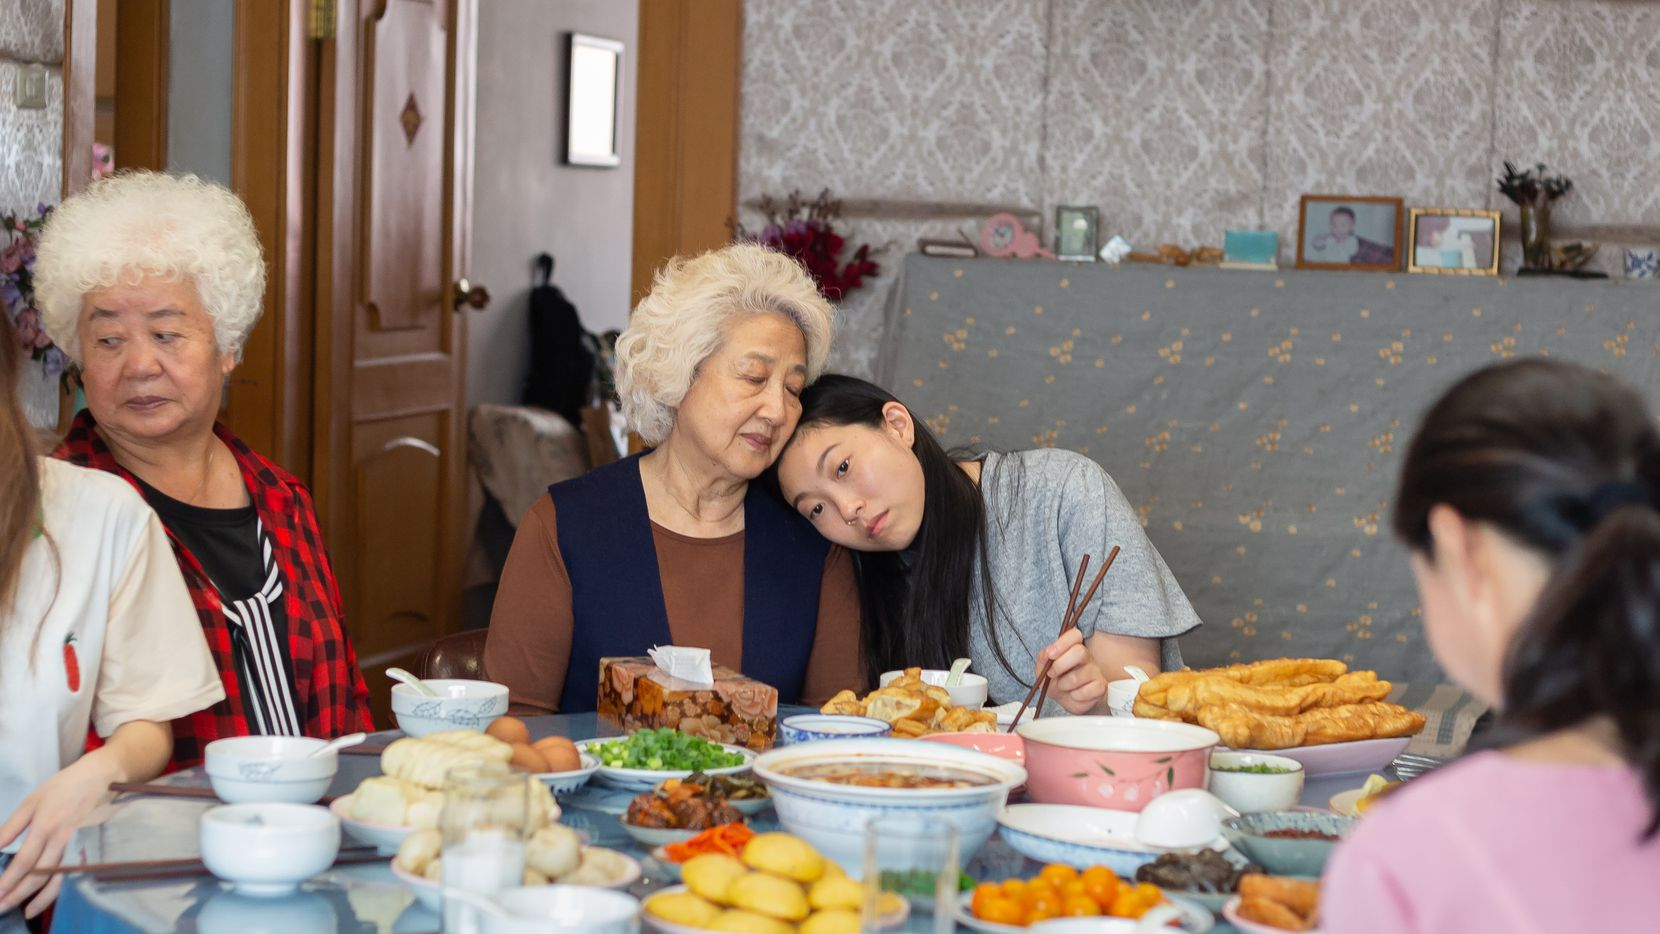 Billi (right, Awkwafina) shares an intimate moment with Nai Nai (Zhao Shuzhen) in a breakfast scene from The Farewell.